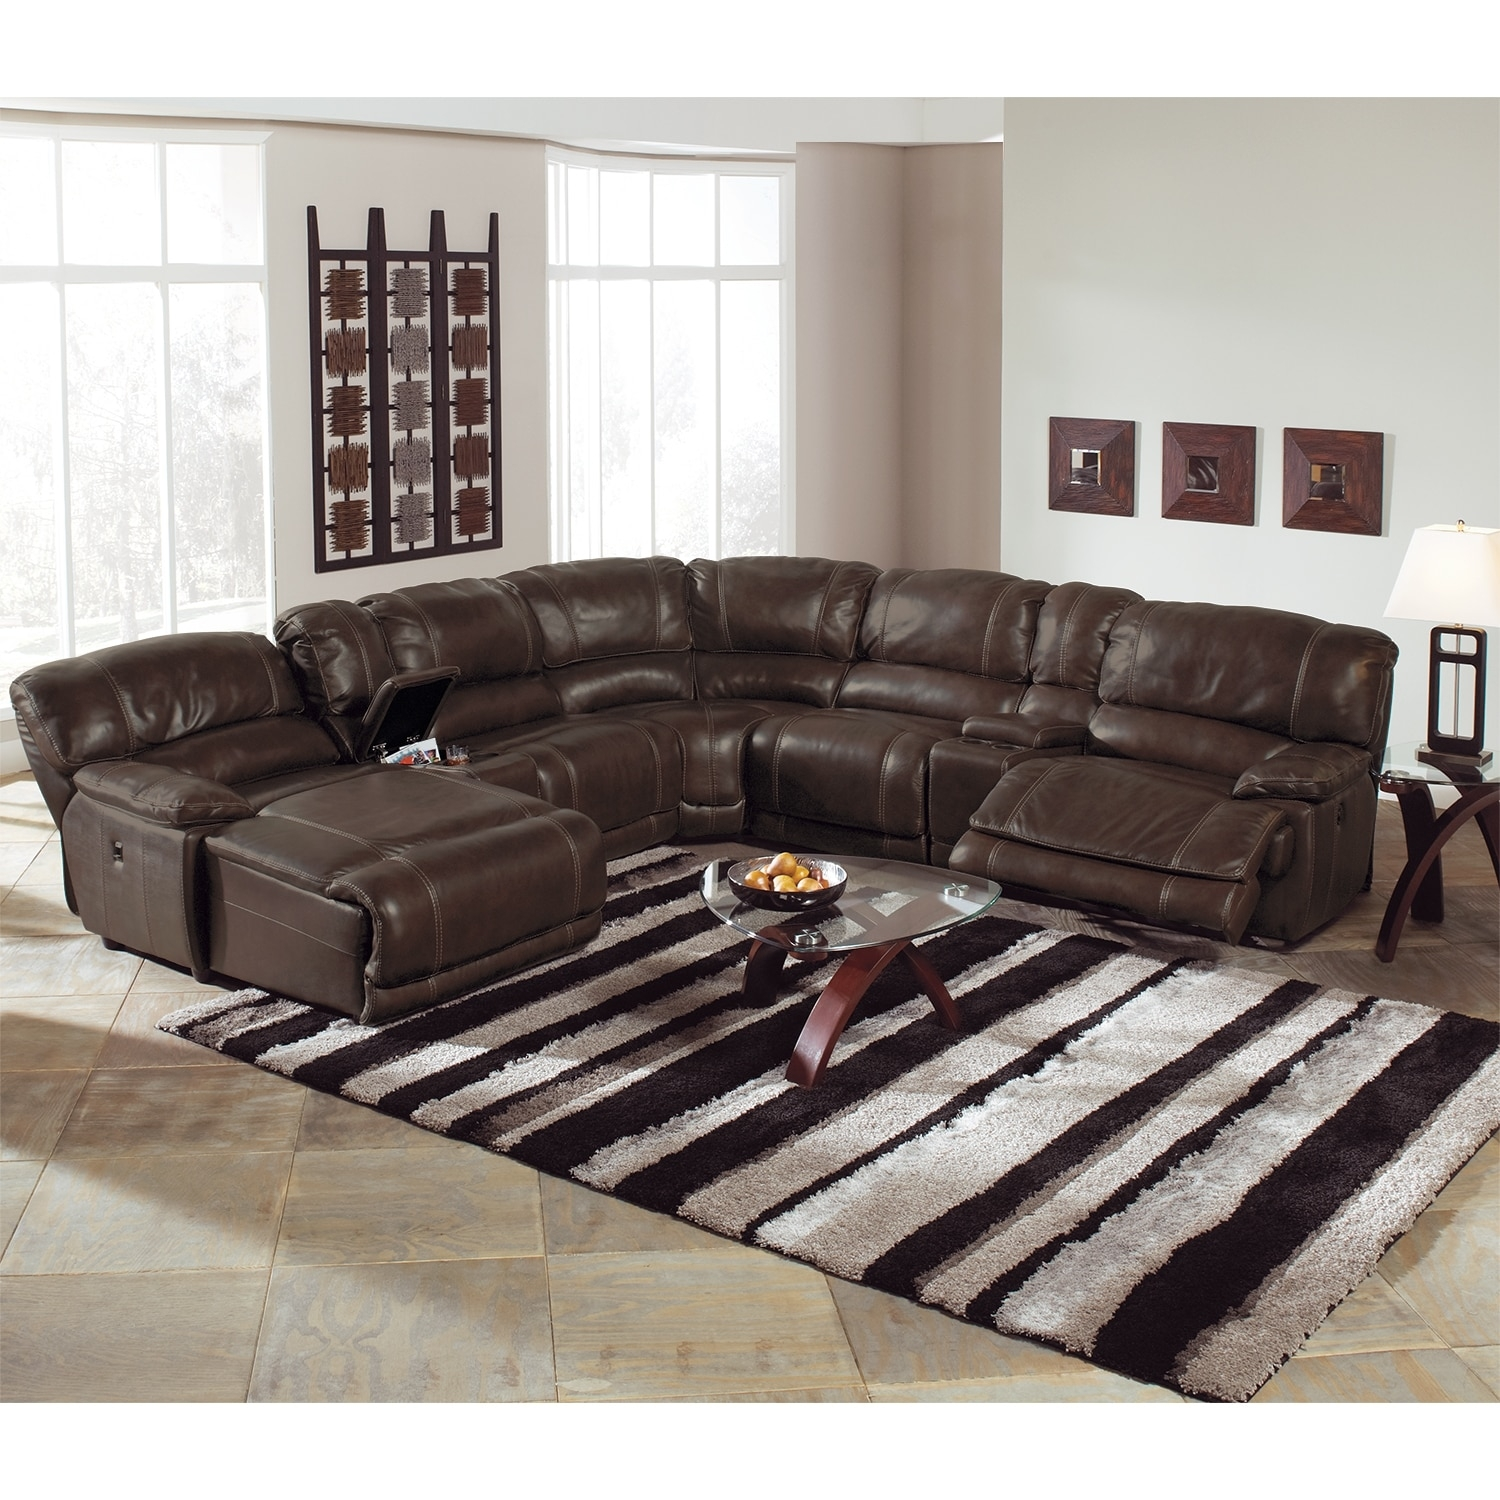 12 best collection of 6 piece leather sectional sofa. Black Bedroom Furniture Sets. Home Design Ideas